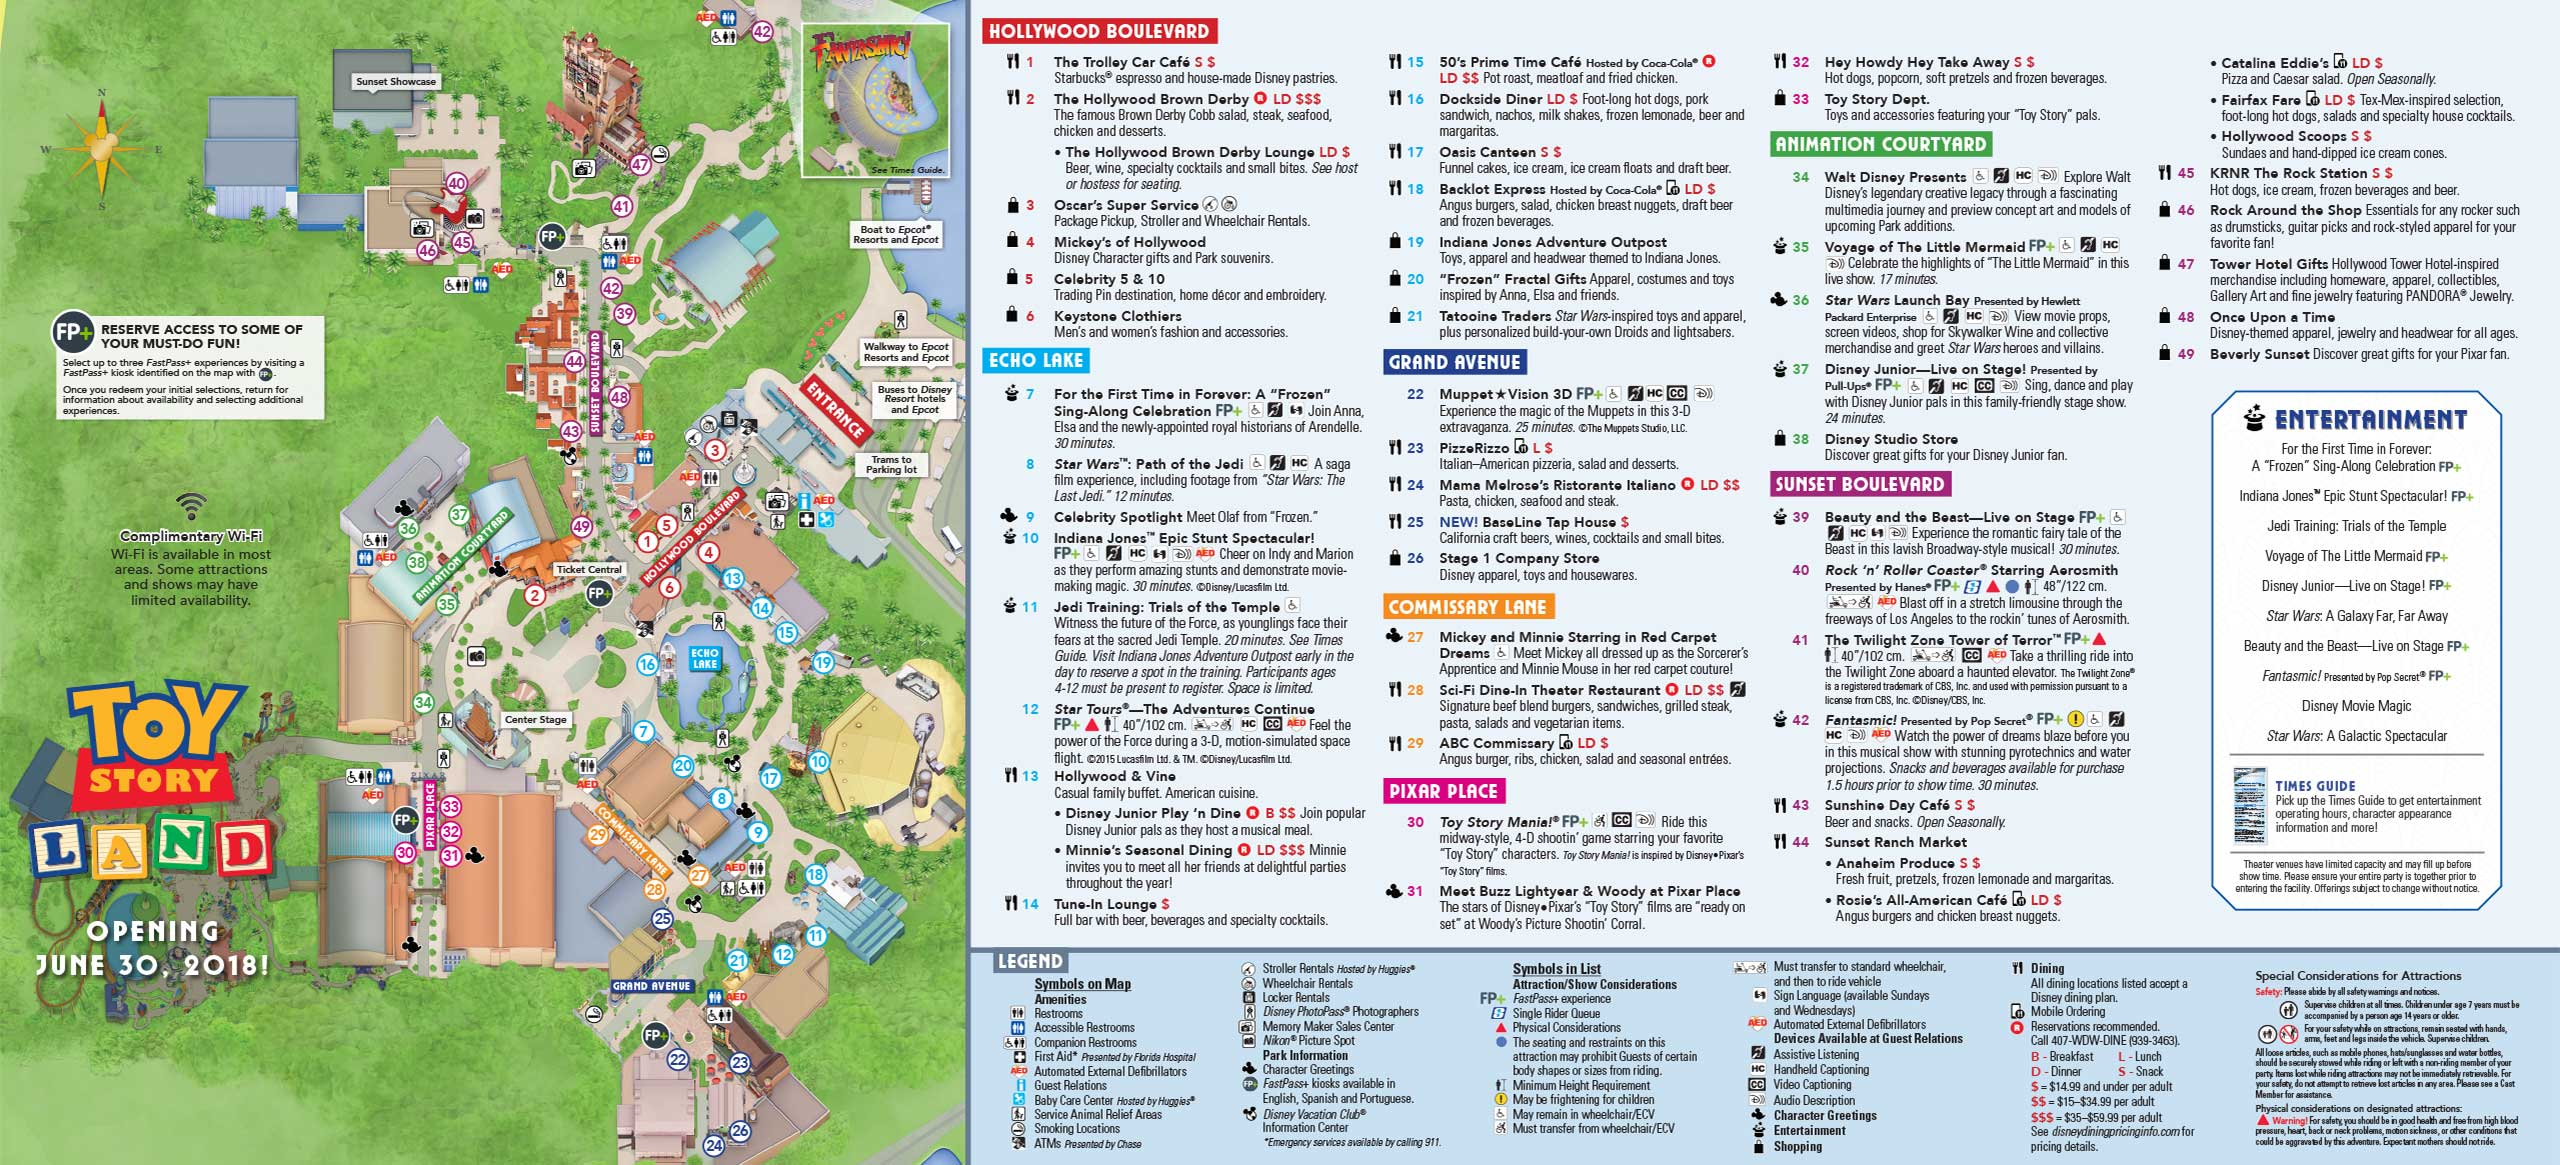 PHOTO   New guide map for Disney's Hollywood Studios shows Toy